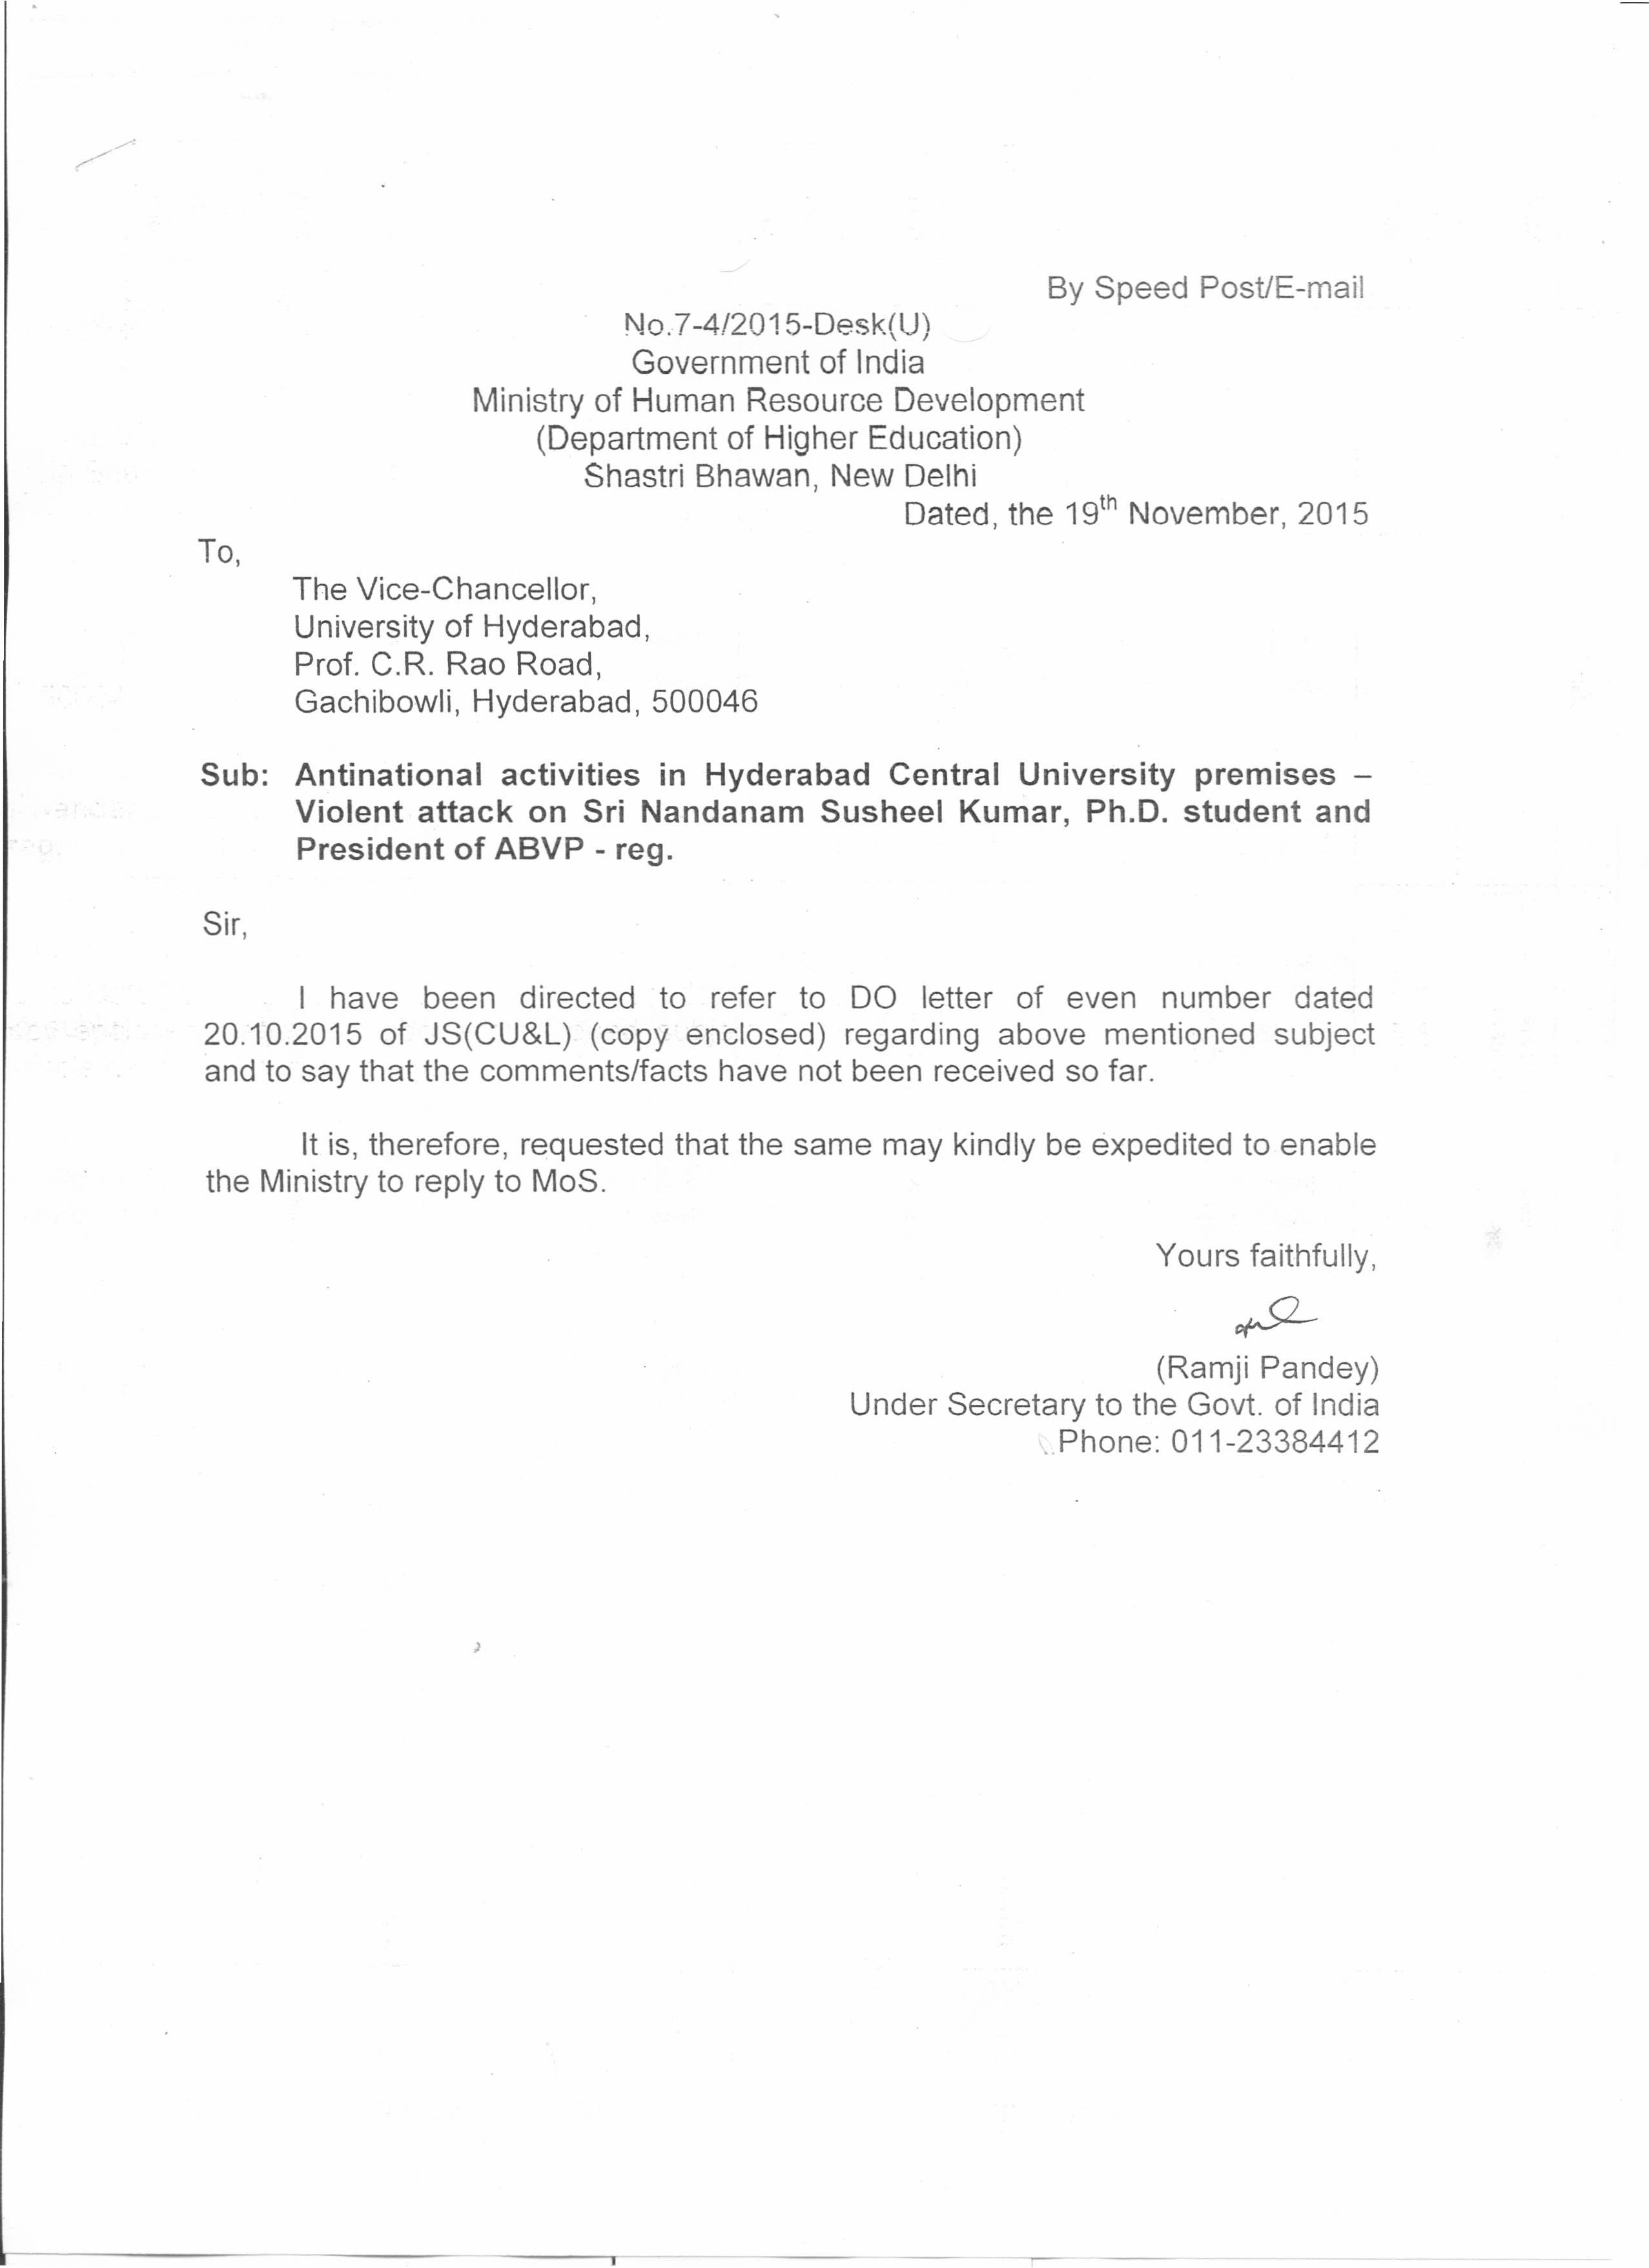 Another letter from the Ministry of Human Resource Development to the VC of Hyderabad University